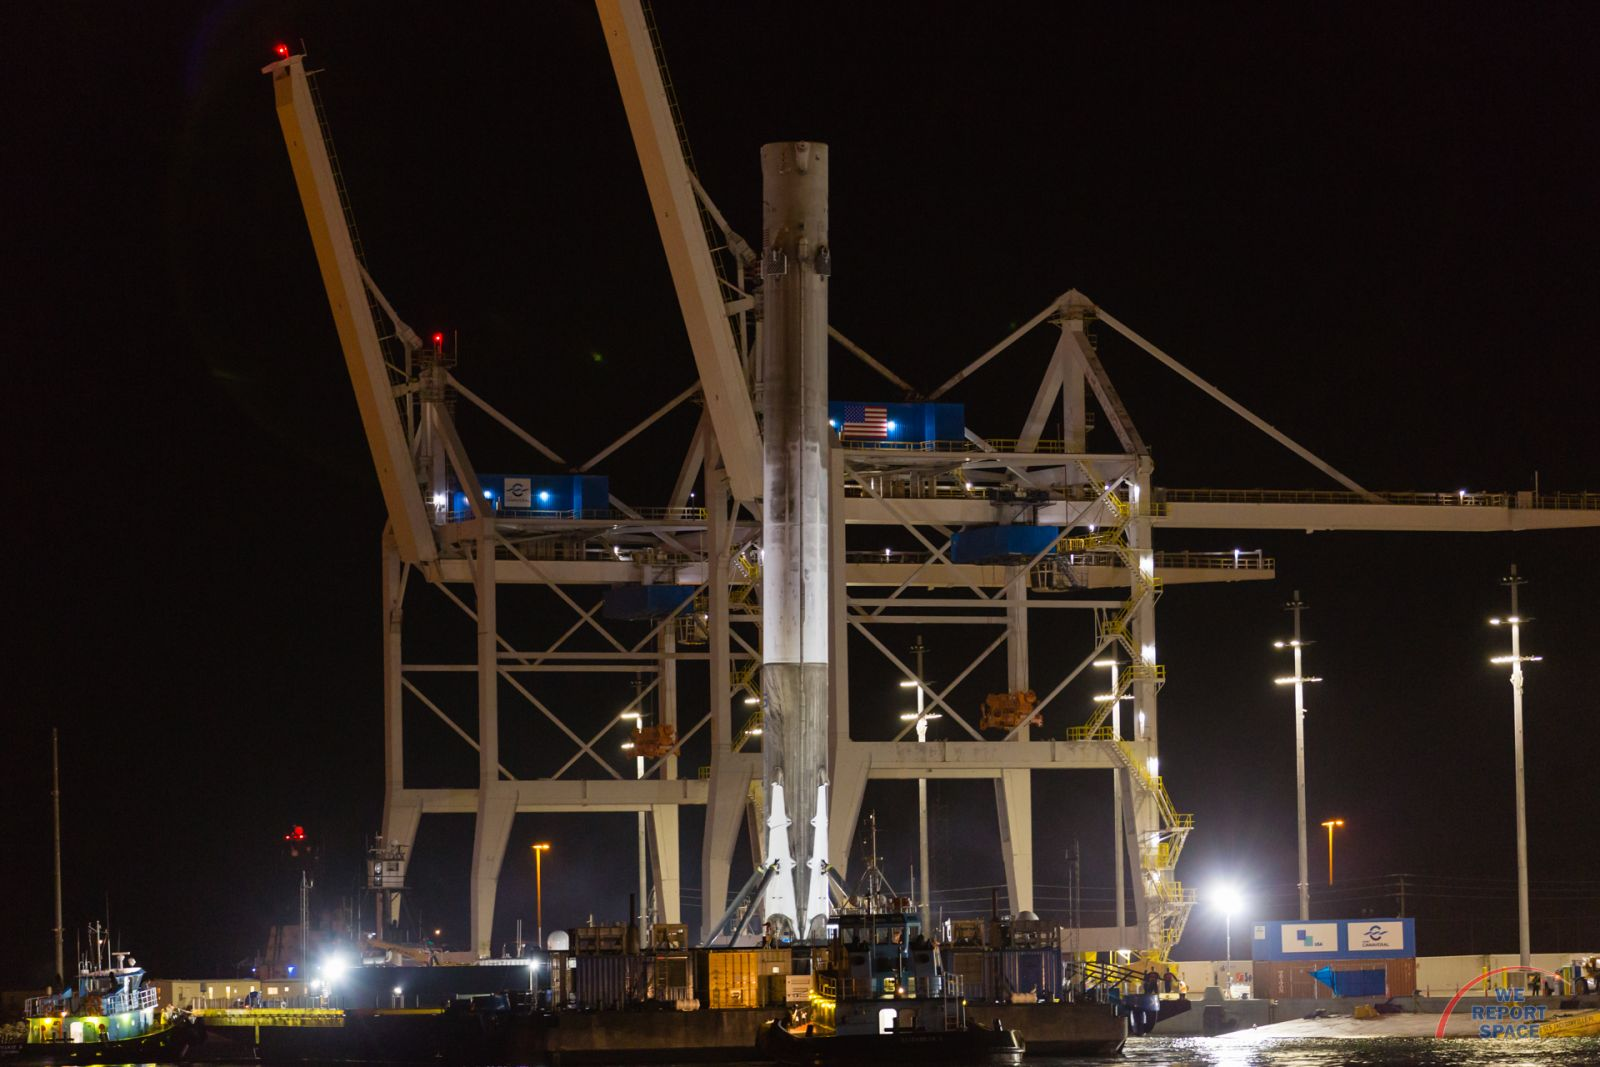 SpaceX Falcon 9 FT first stage at Port Canaveral in Florida Photo Credit: Michael Seeley / We Report Space